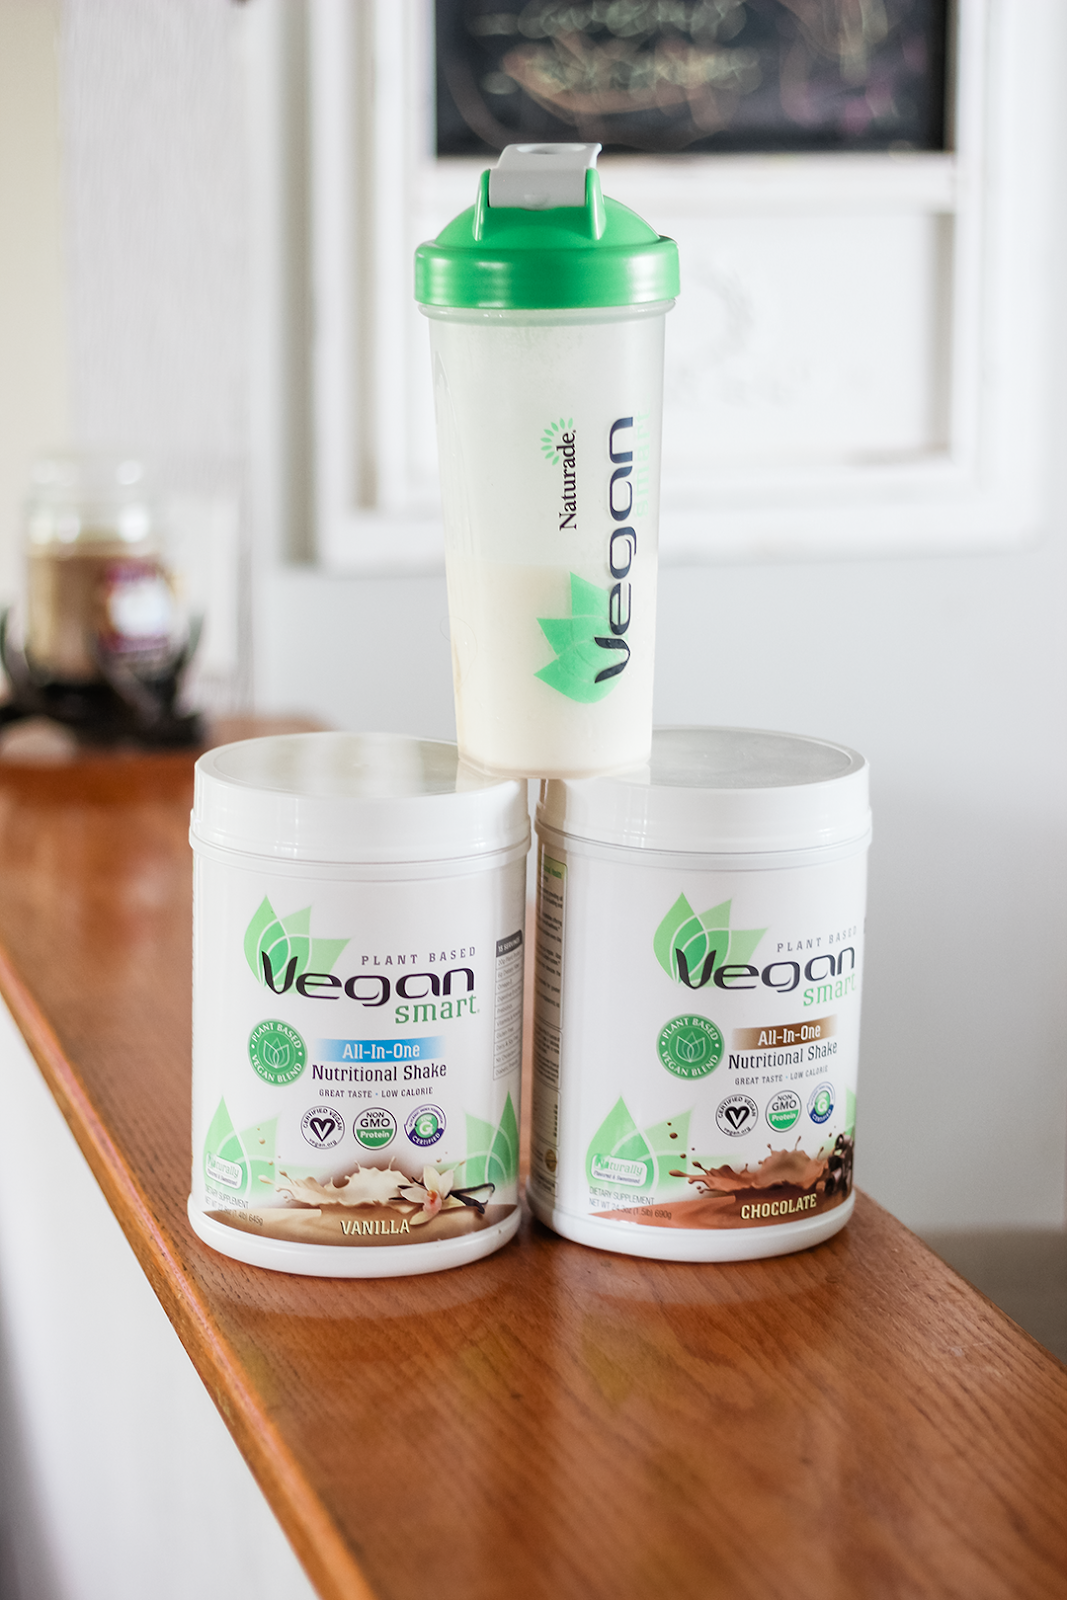 Cue VeganSmart All In One Nutritional Shakes They Are A Plant Based Protein Powder That Includes Five Different Non GMO Proteins